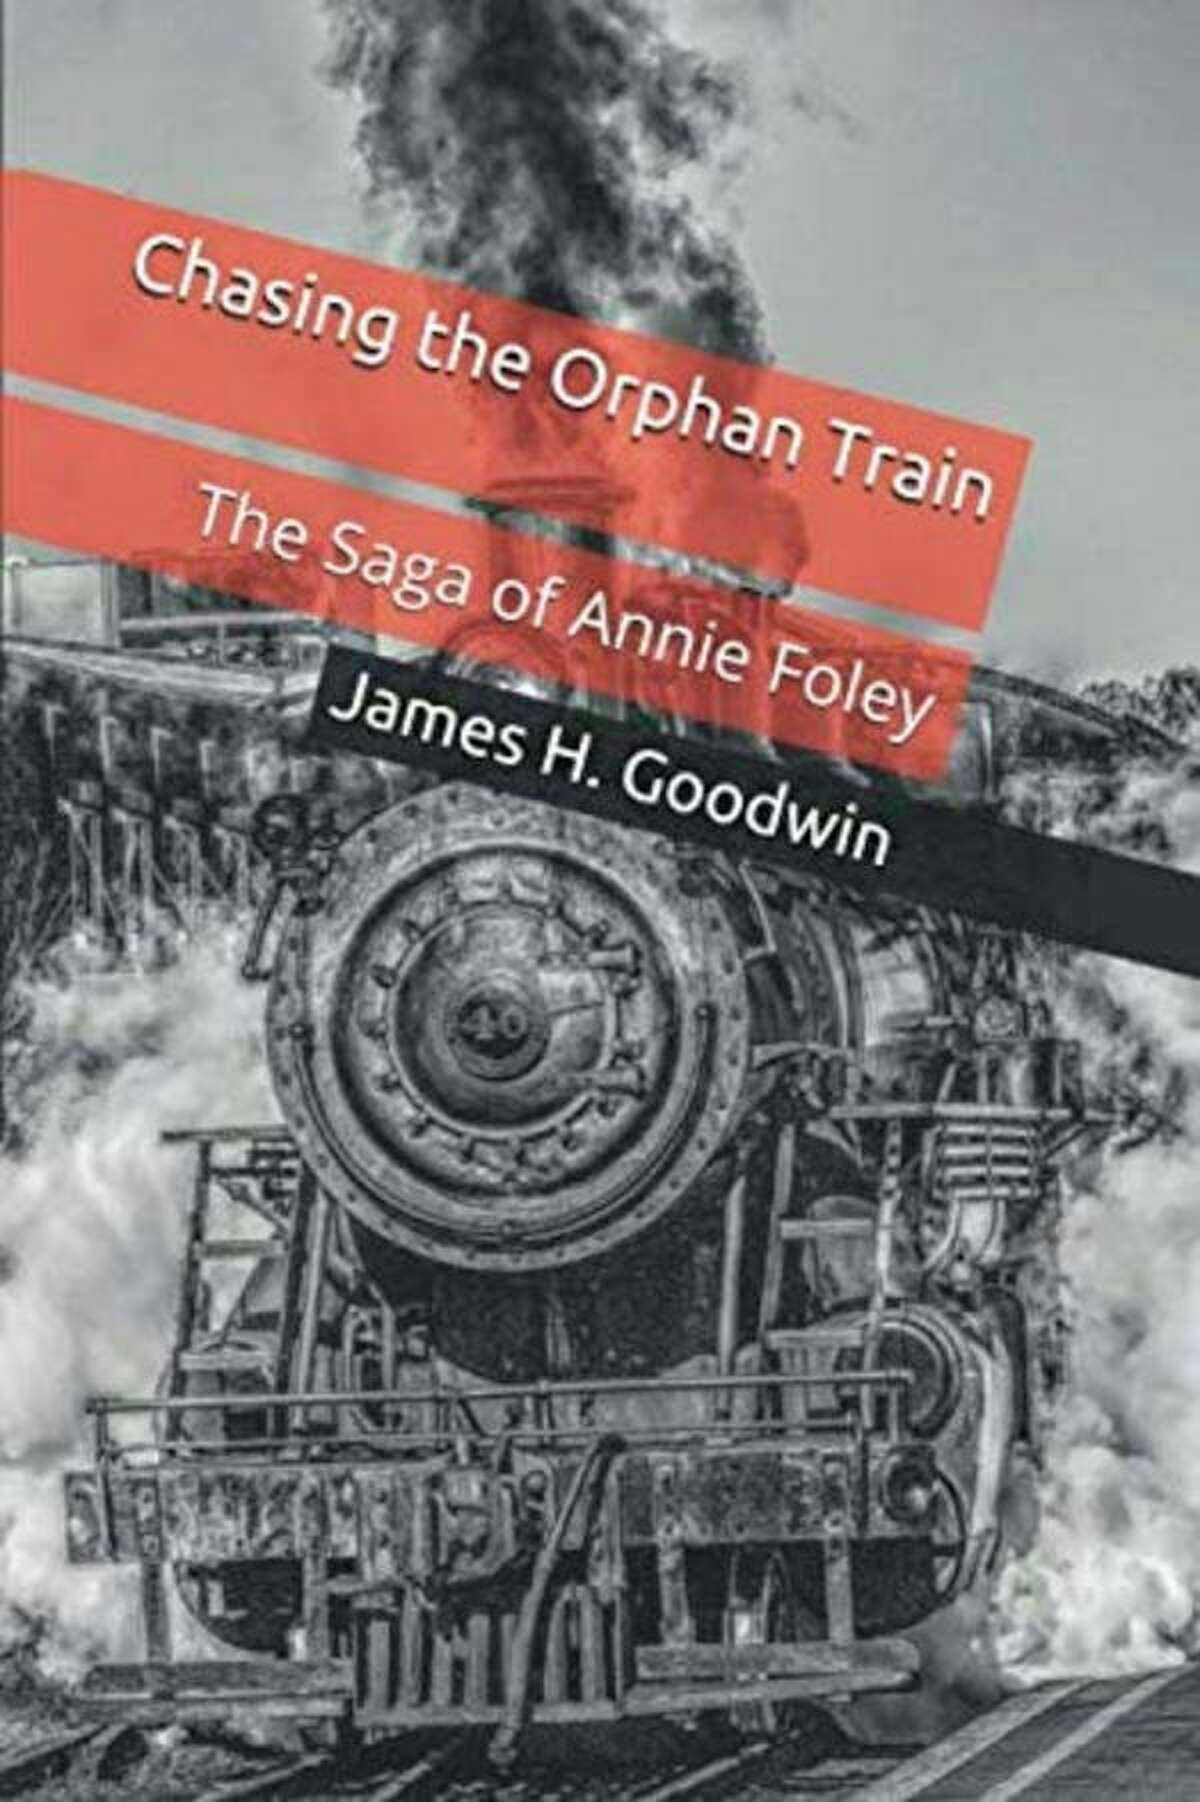 """Local author James H. Goodwin's new book, """"Chasing the Orphan Train,"""" is now availableatHappy Owl Bookstore in Manistee and through Amazon. (Courtesy photo)"""